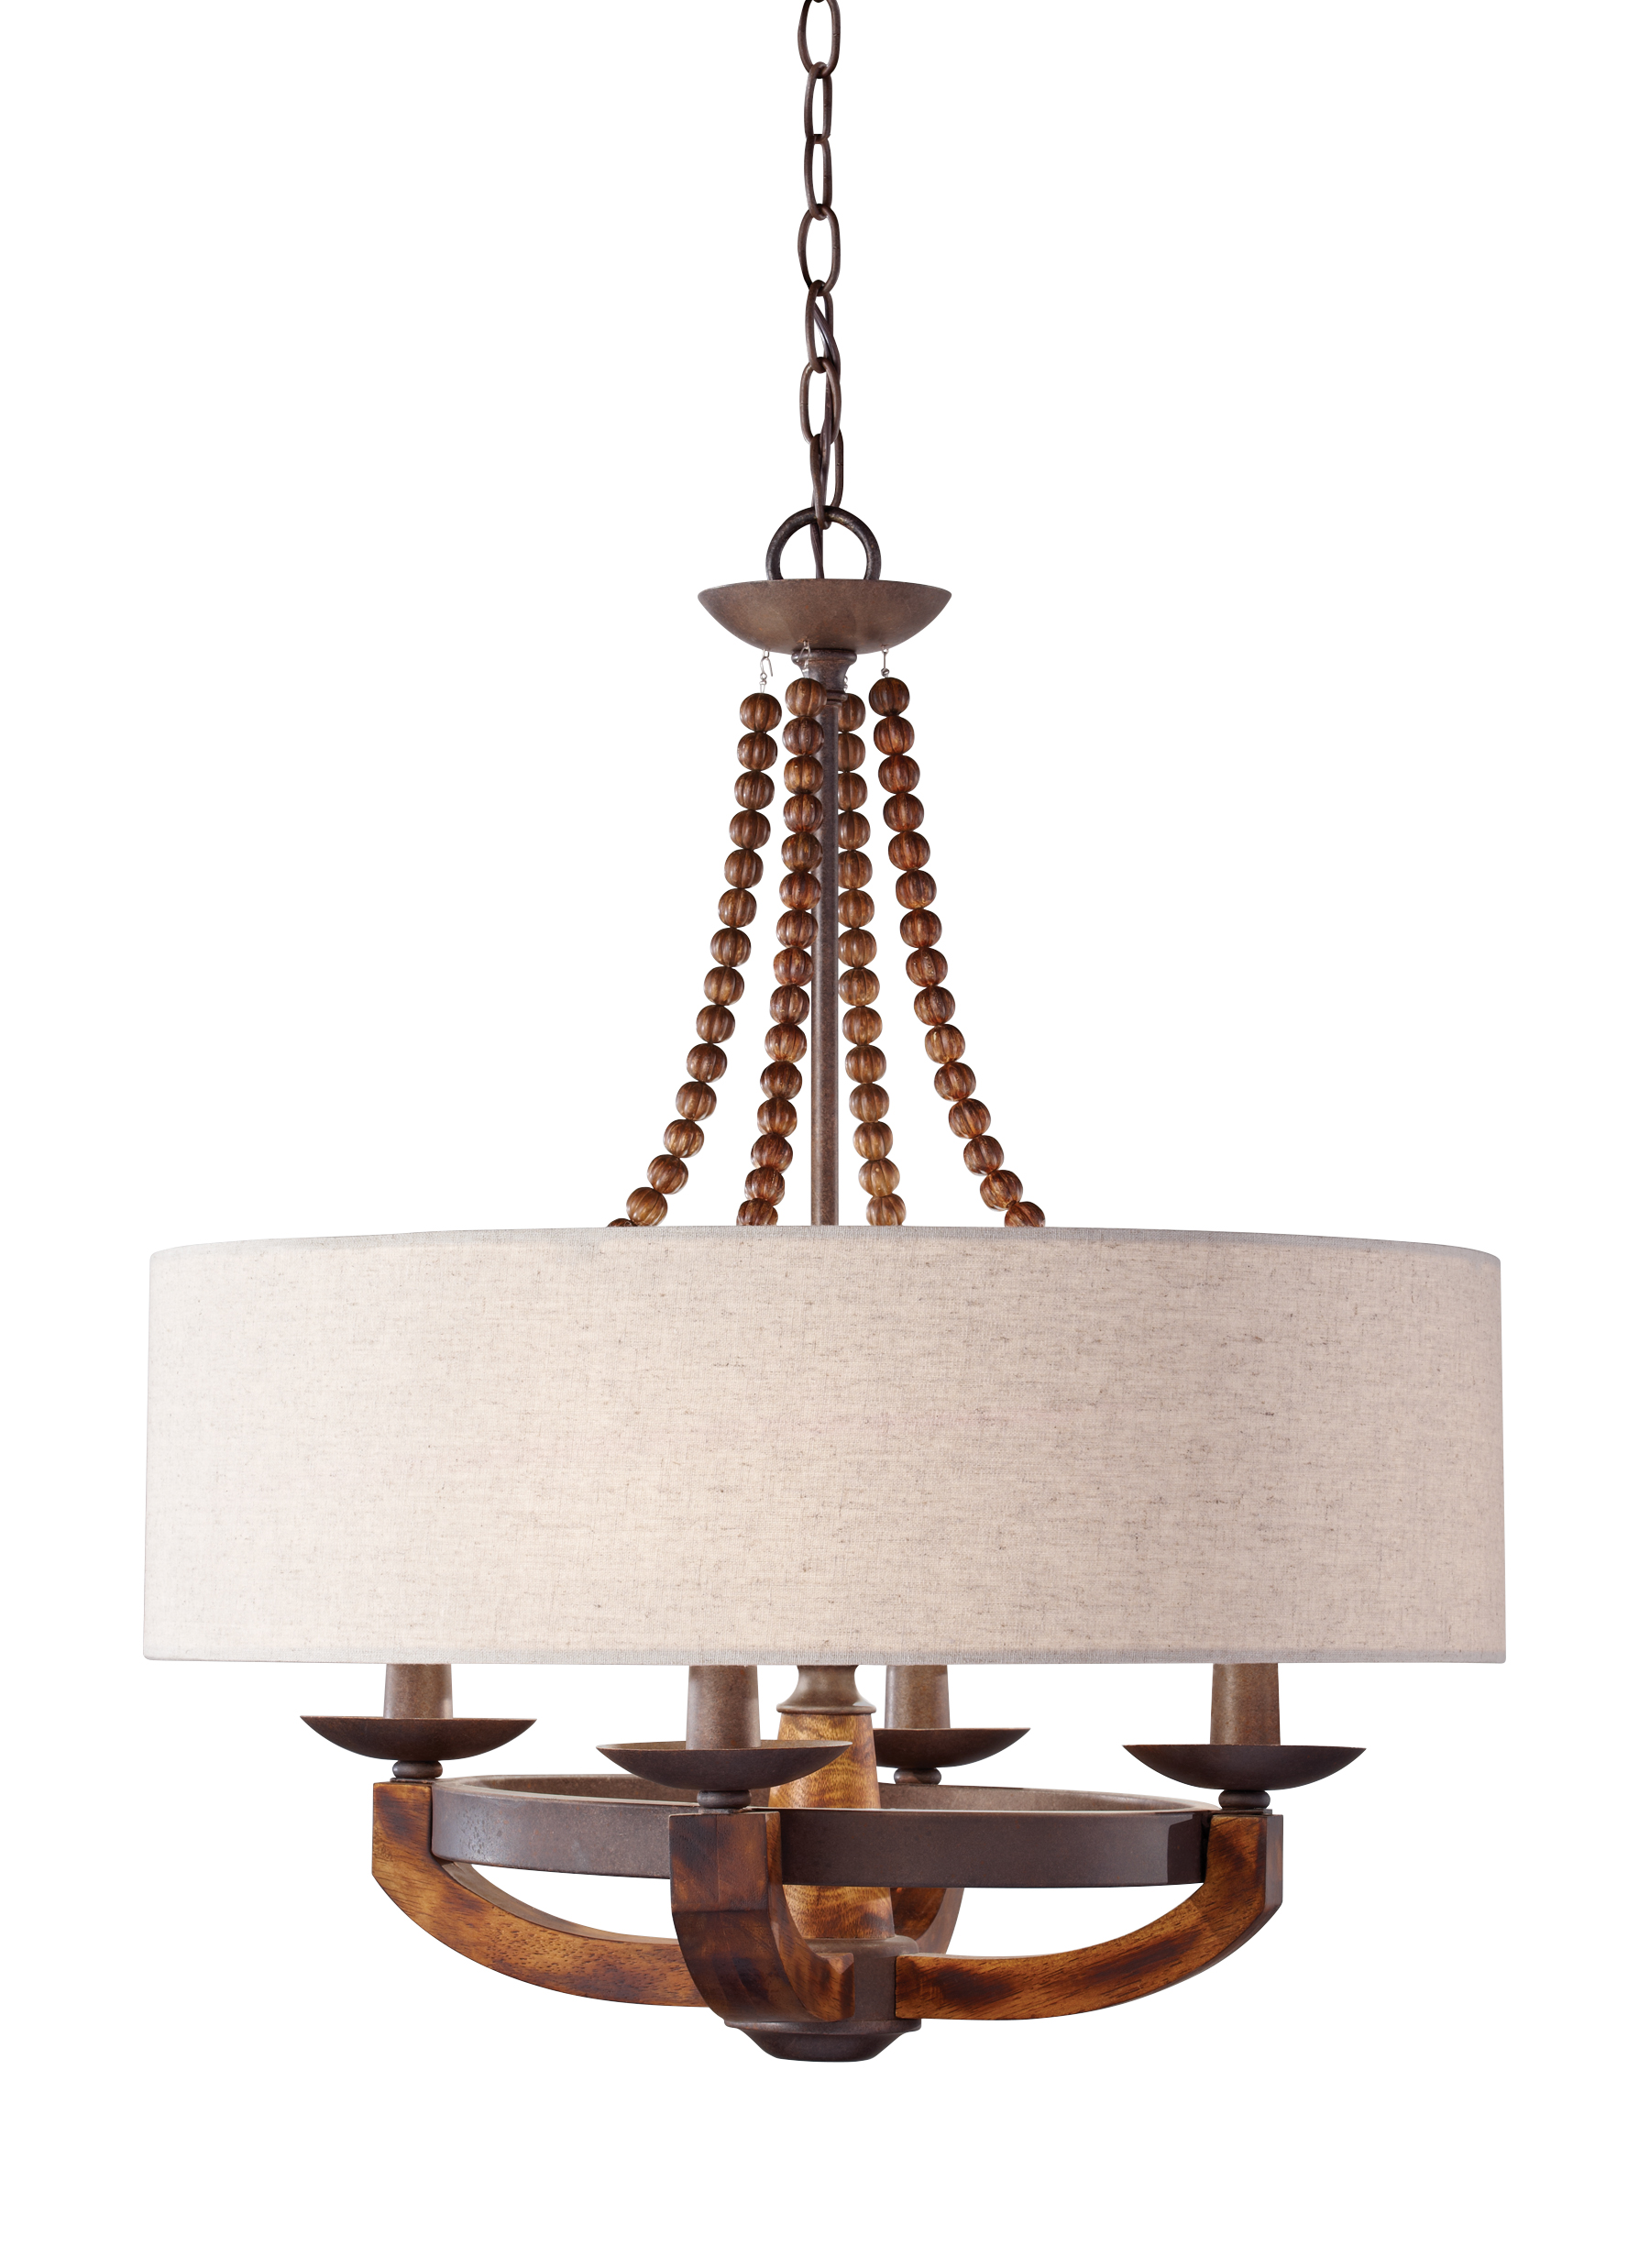 F2752 4RI BWD 4 Light Single Tier Chandelier Rustic Iron